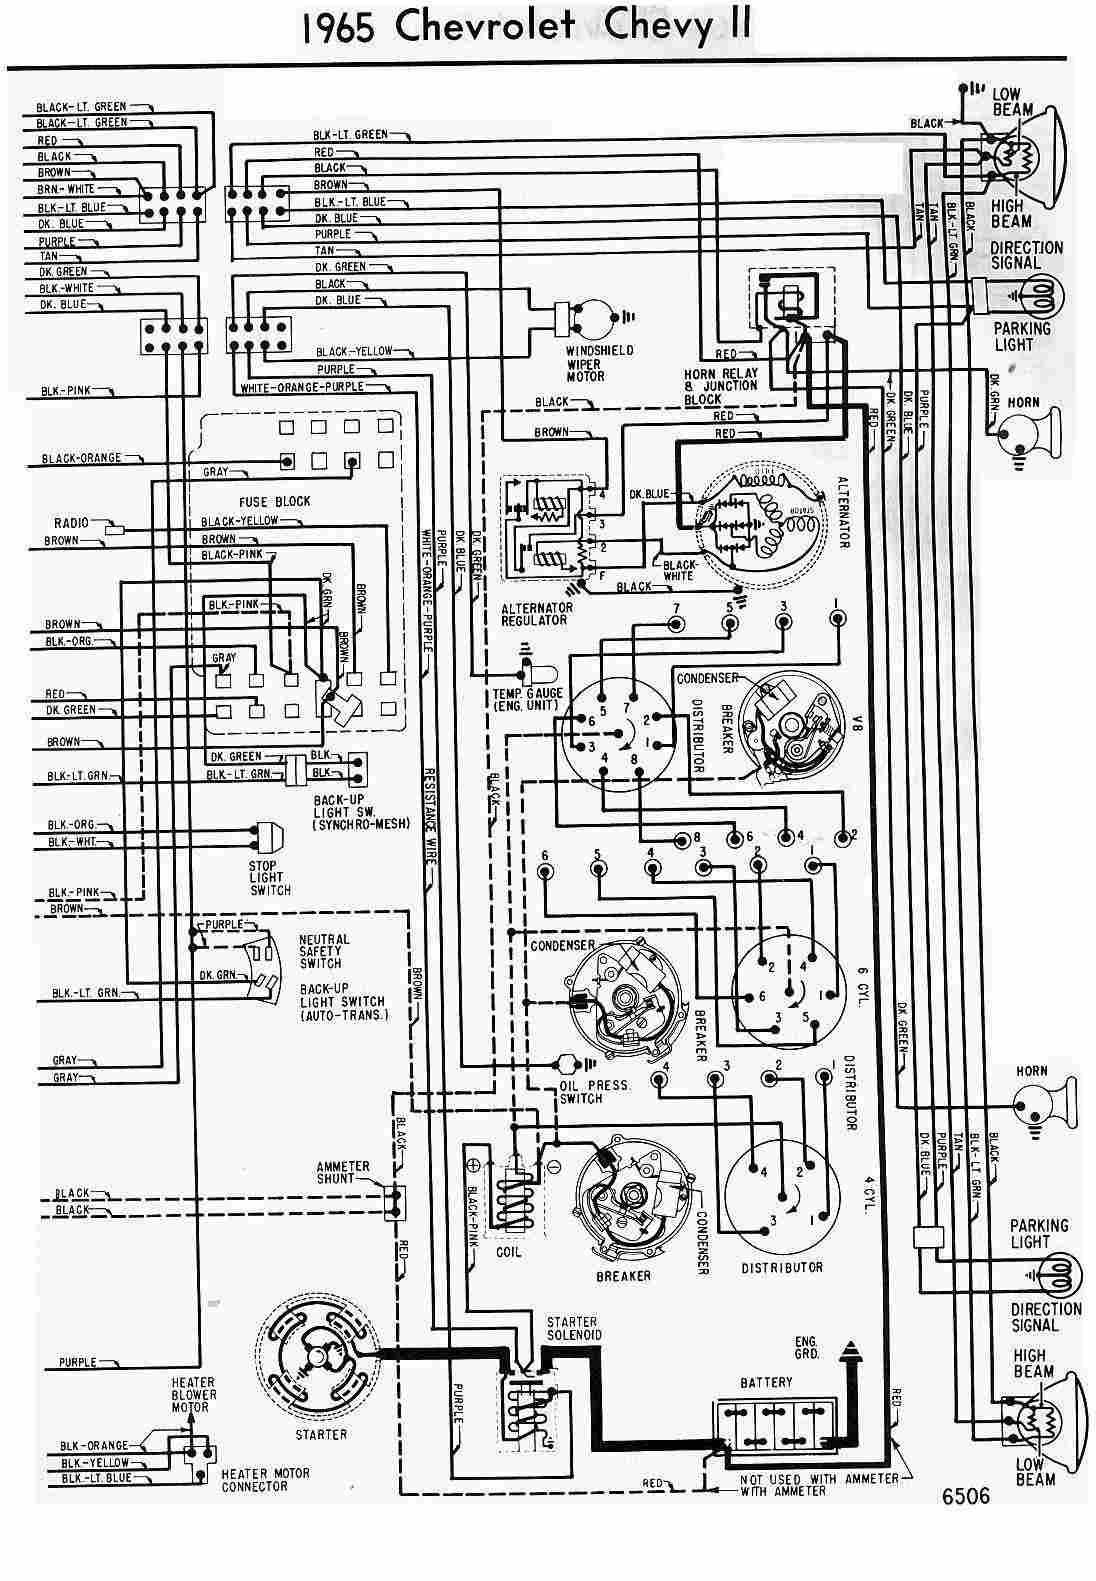 small resolution of 1972 camaro wiring diagram free detailed wiring diagram 88 camaro engine wire diagrams 1970 camaro wiring diagram as well chevy